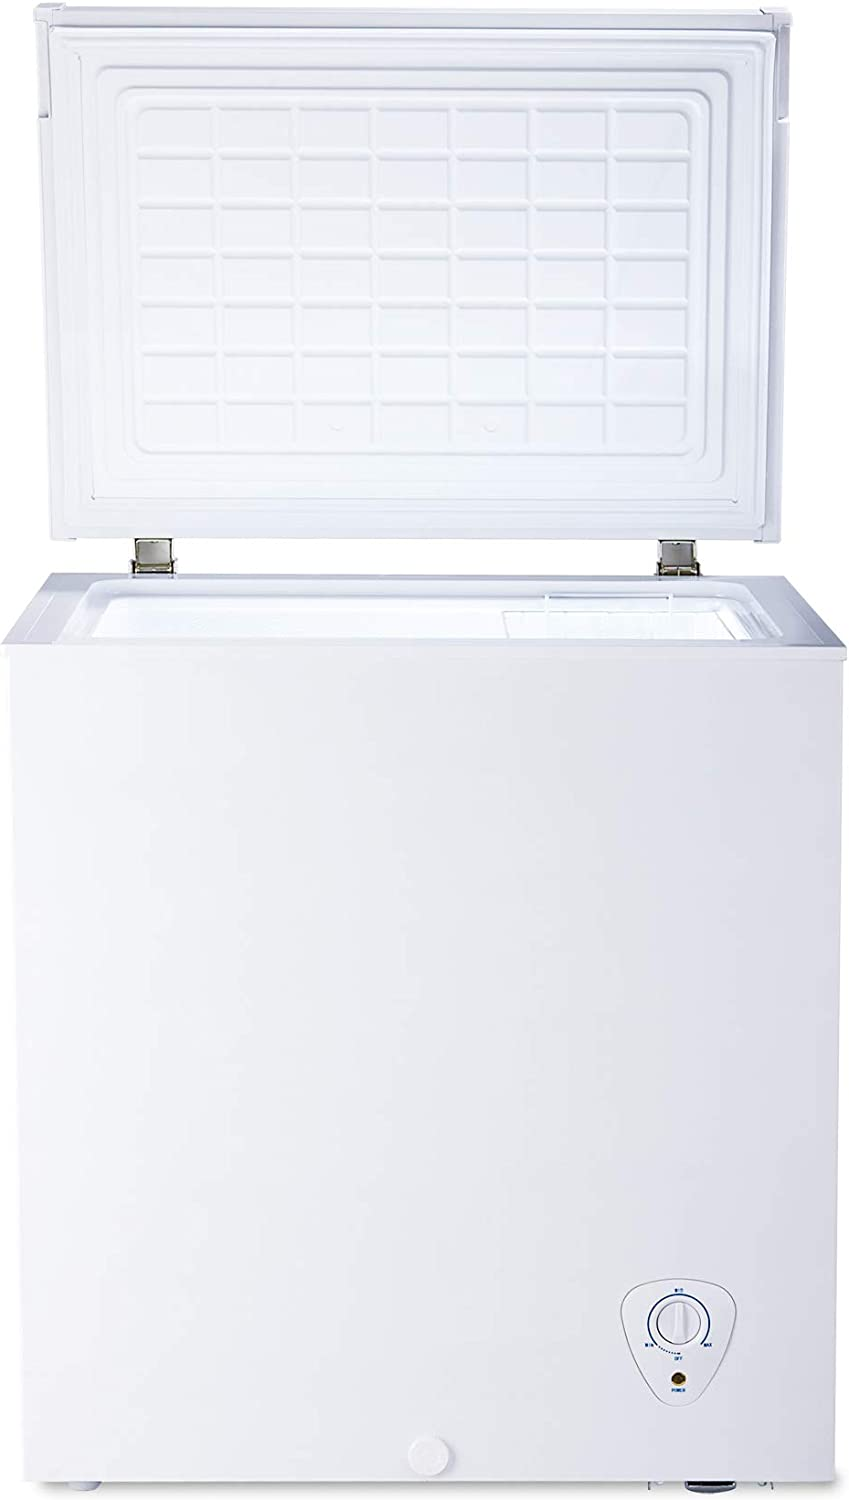 SMETA 5 cu ft Chest Freezer with Removable Baskets Free-Standing Top Open Door Deep Freezer, White